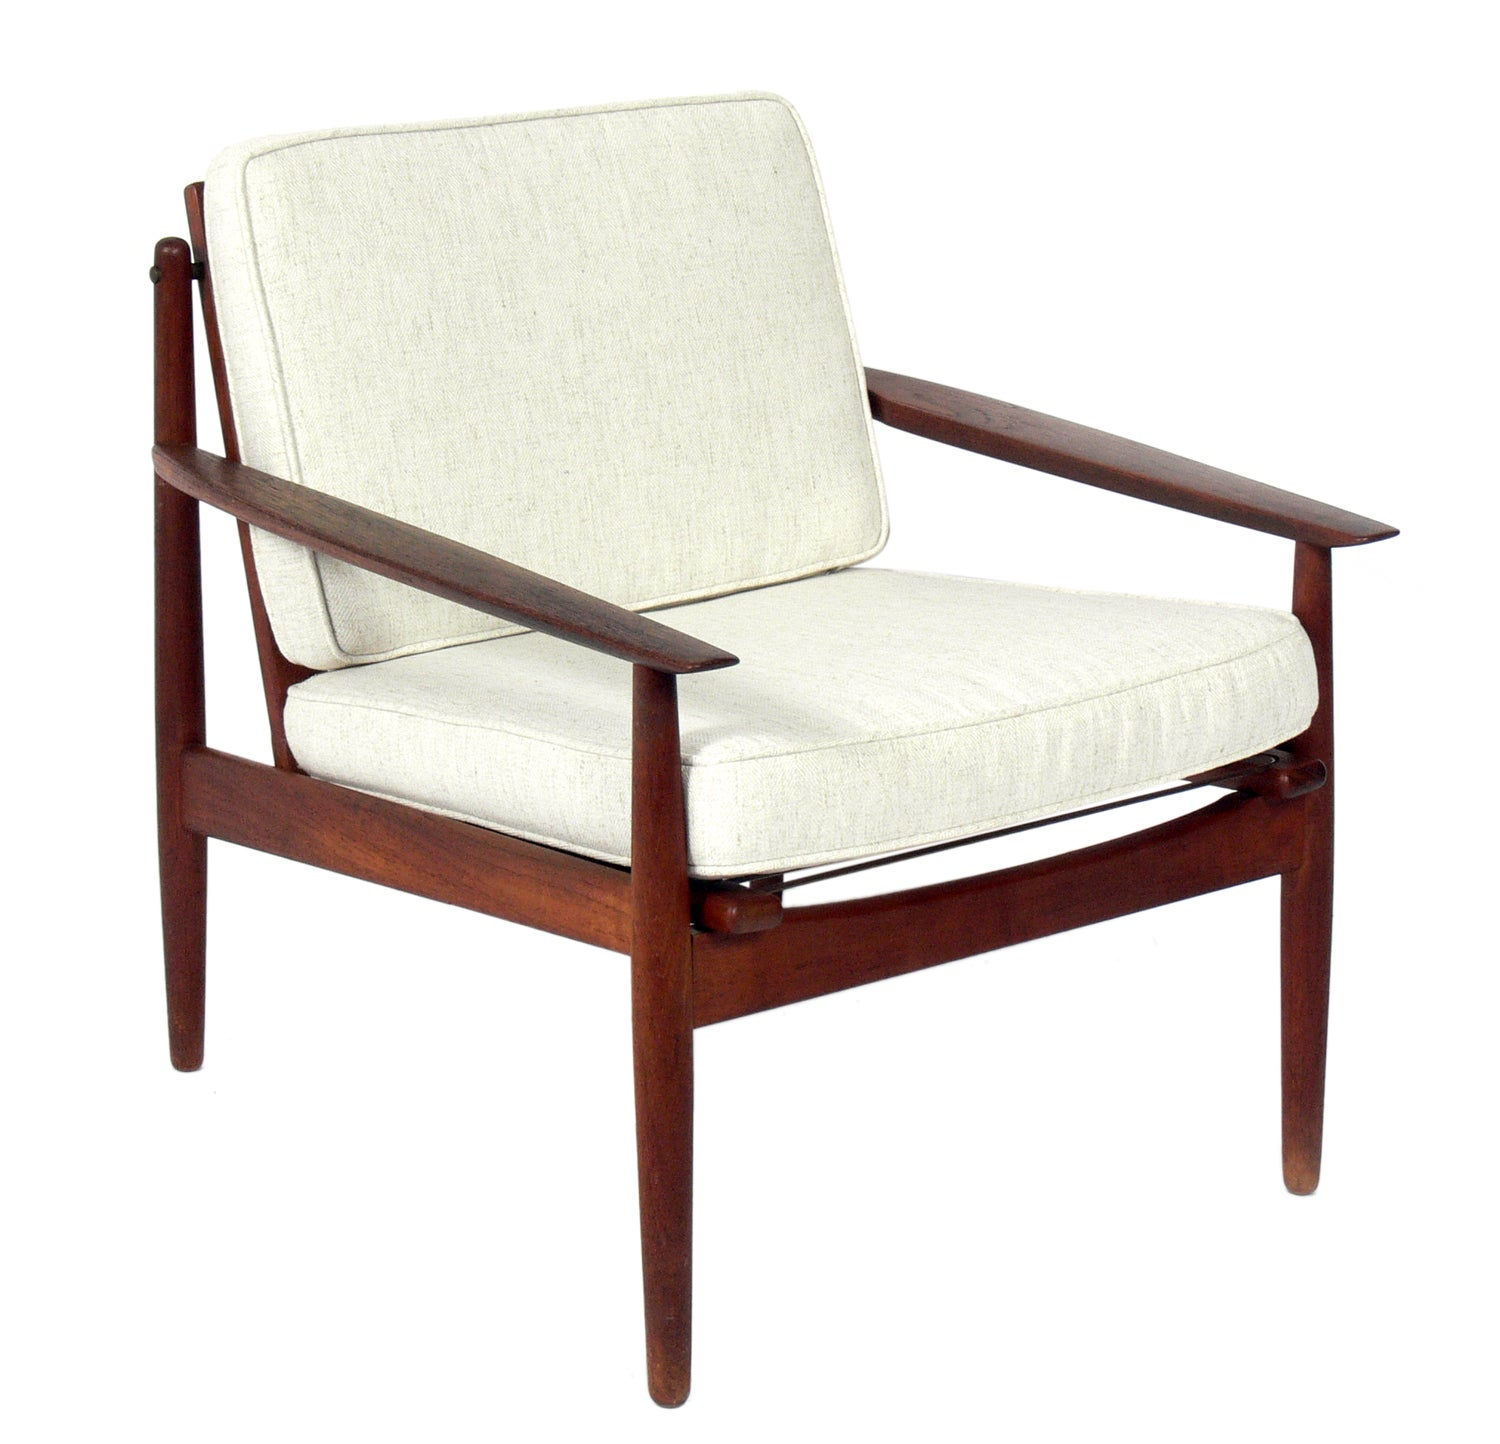 Danish Modern Lounge Chair Danish Modern Lounge Chair By Arne Vodder